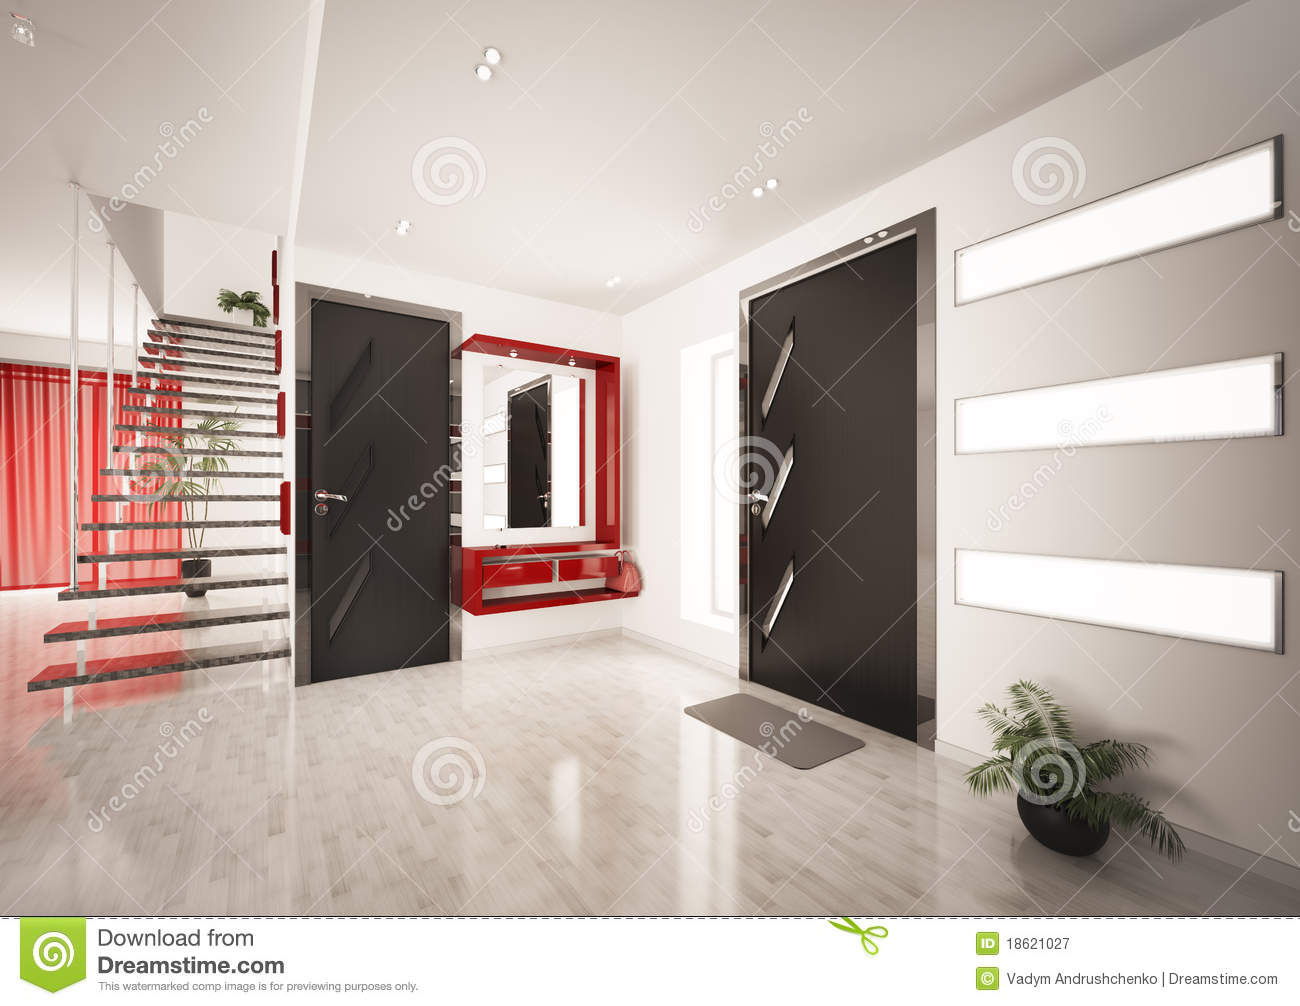 L 39 int rieur moderne du hall avec l 39 escalier 3d rendent illustration stock image 18621027 for Entree maison contemporaine